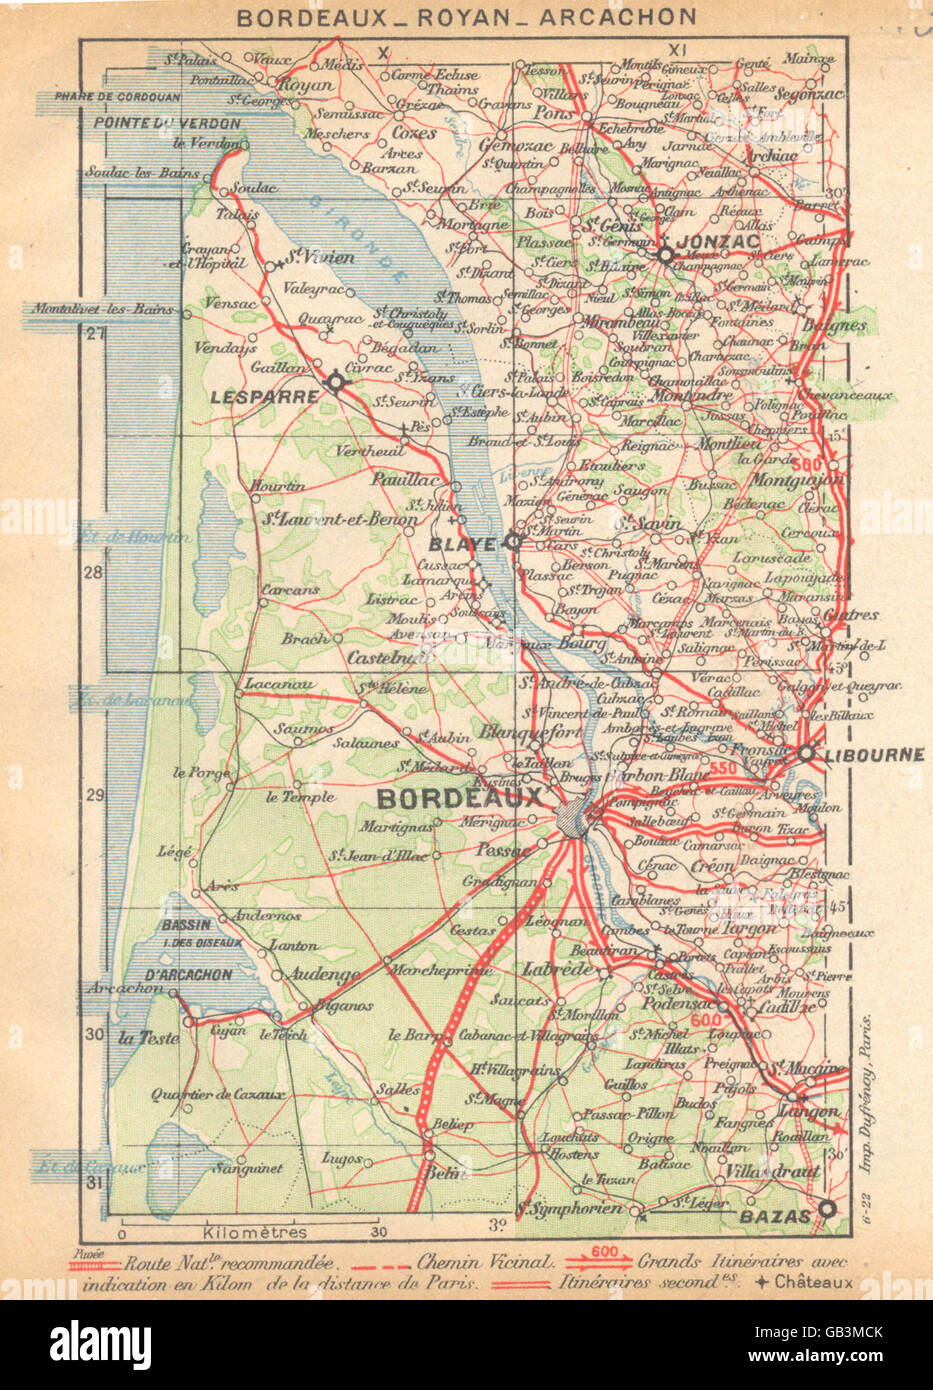 Carte Bordeaux Royan.Gironde Bordeaux Royan Arcachon 1922 Carte Vintage